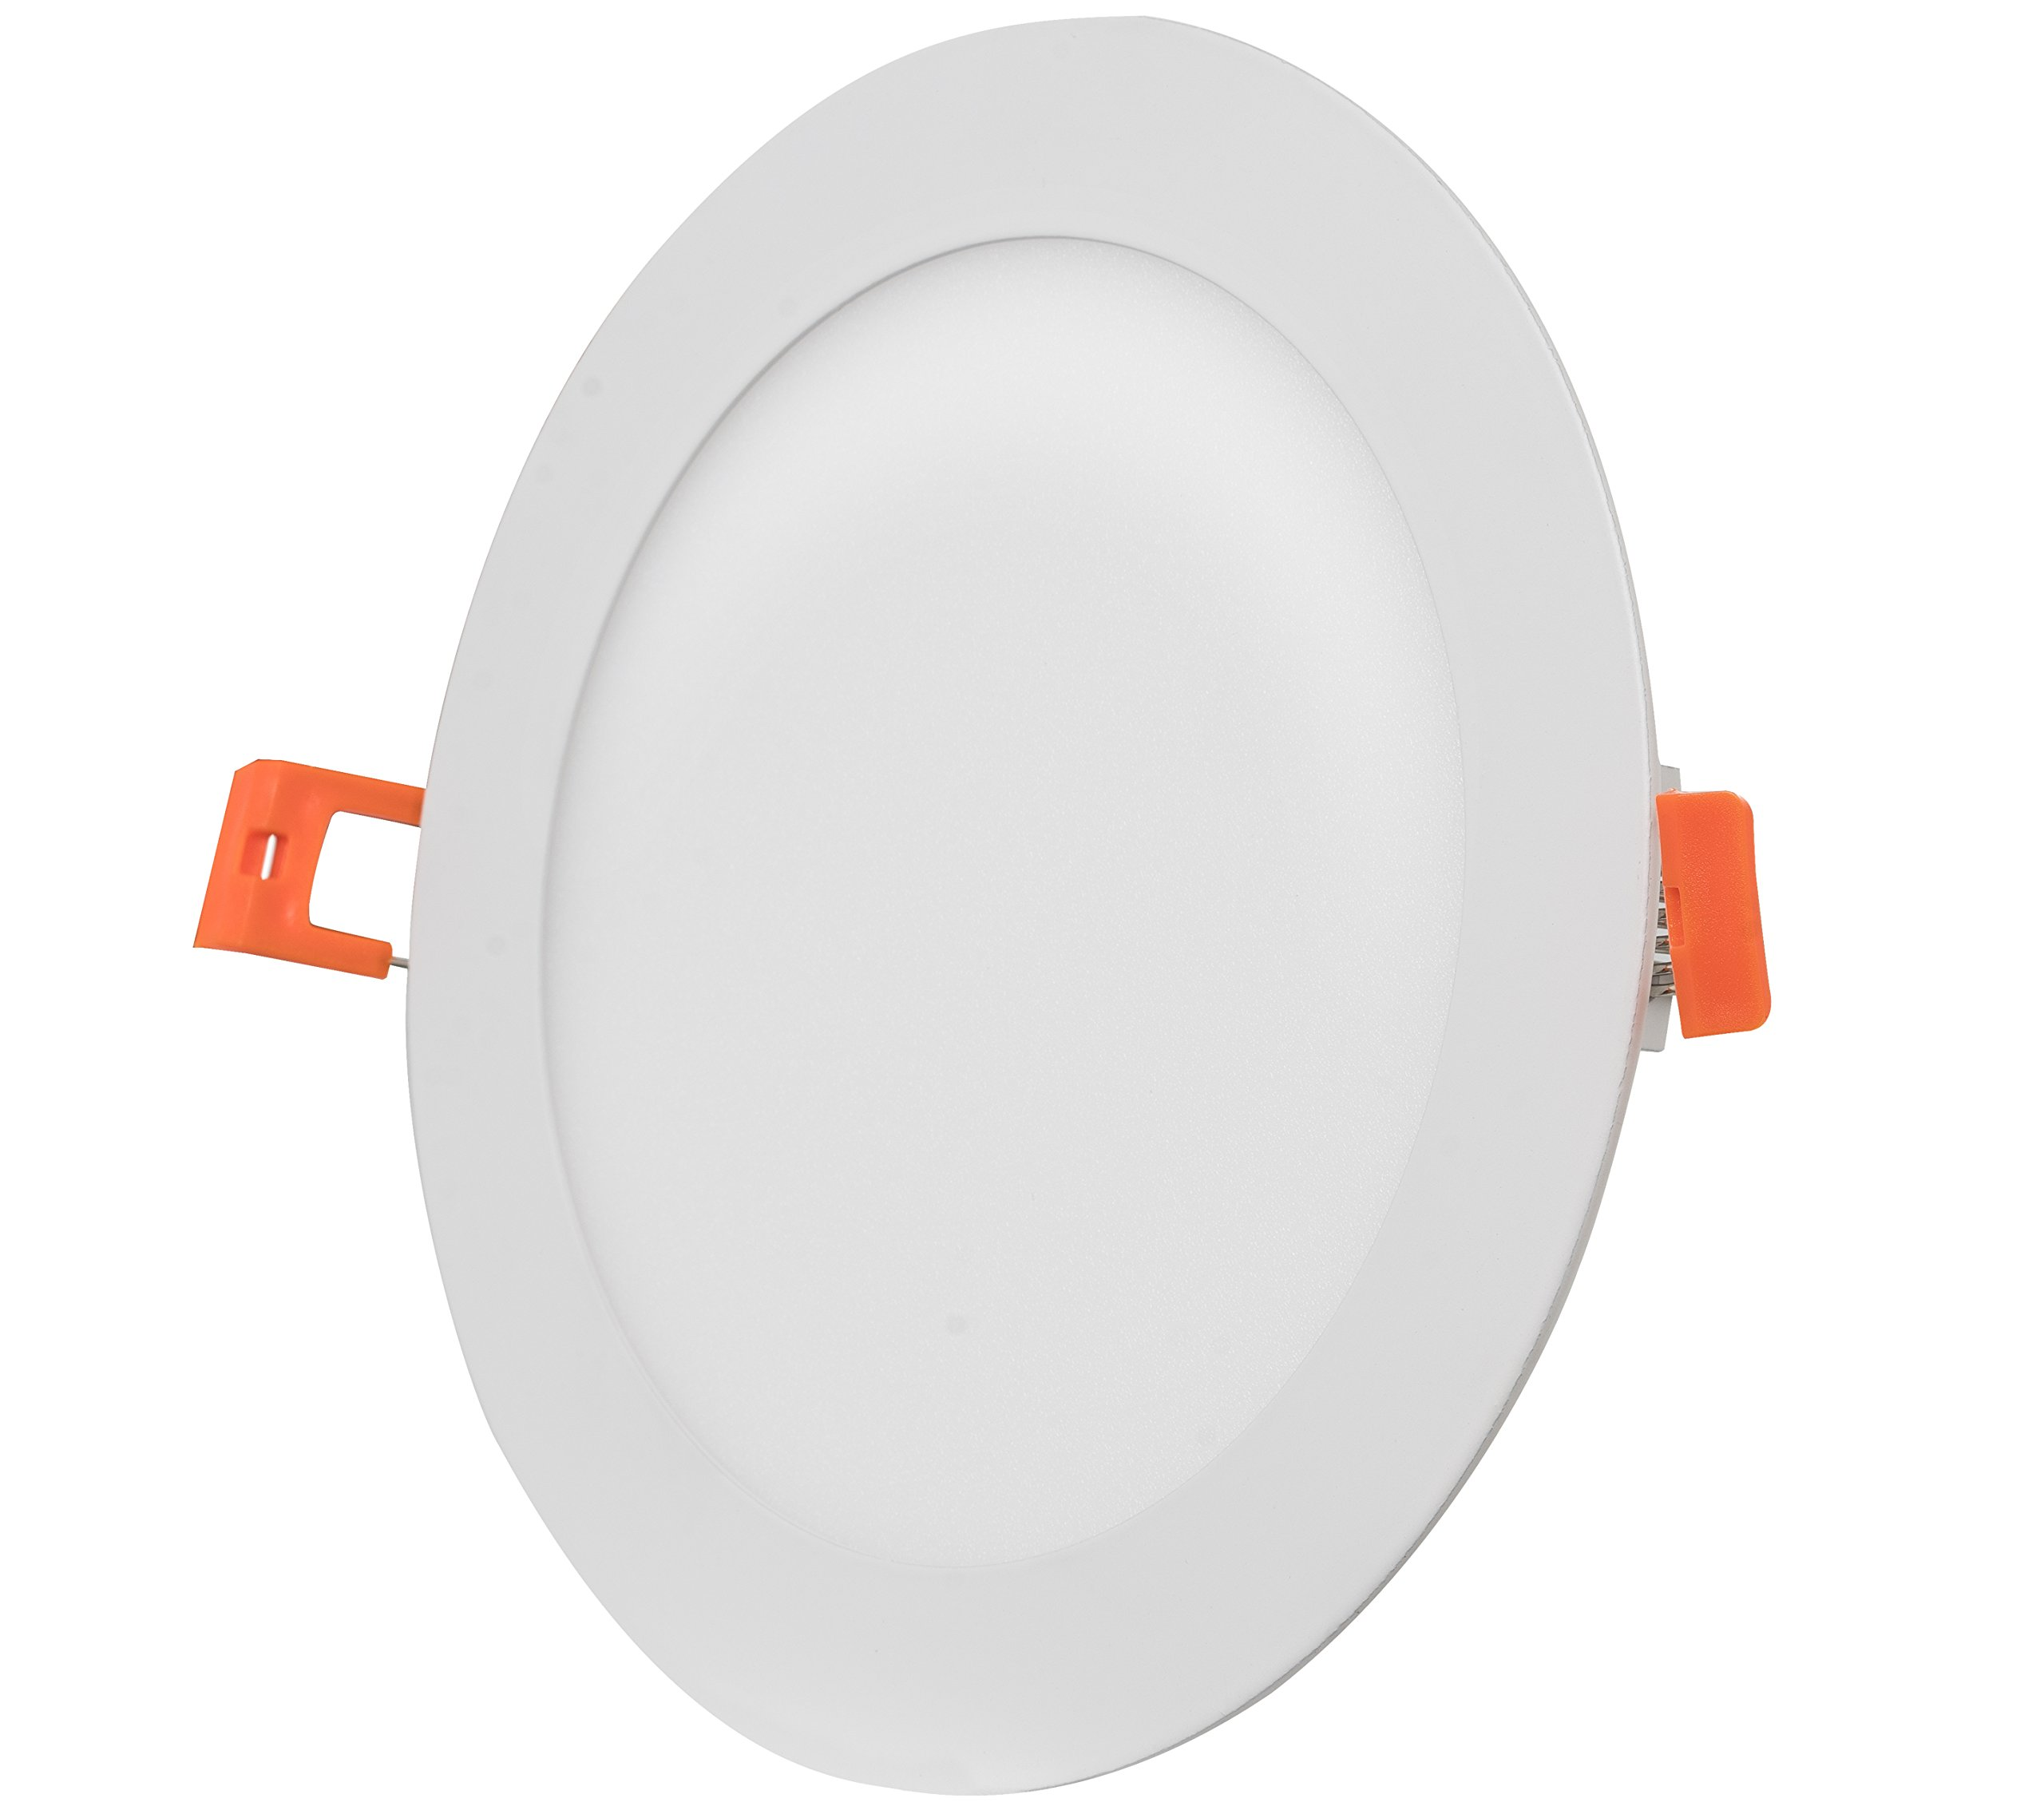 Westgate Lighting 15W 6'' Inch Ultra Thin Slim LED Recessed Light - Dimmable Retrofit Downlight Smooth Trim - Junction Box Included - No Housing Required - Ceiling Lights (8 Pack, 3000K Soft White) by Westgate (Image #3)